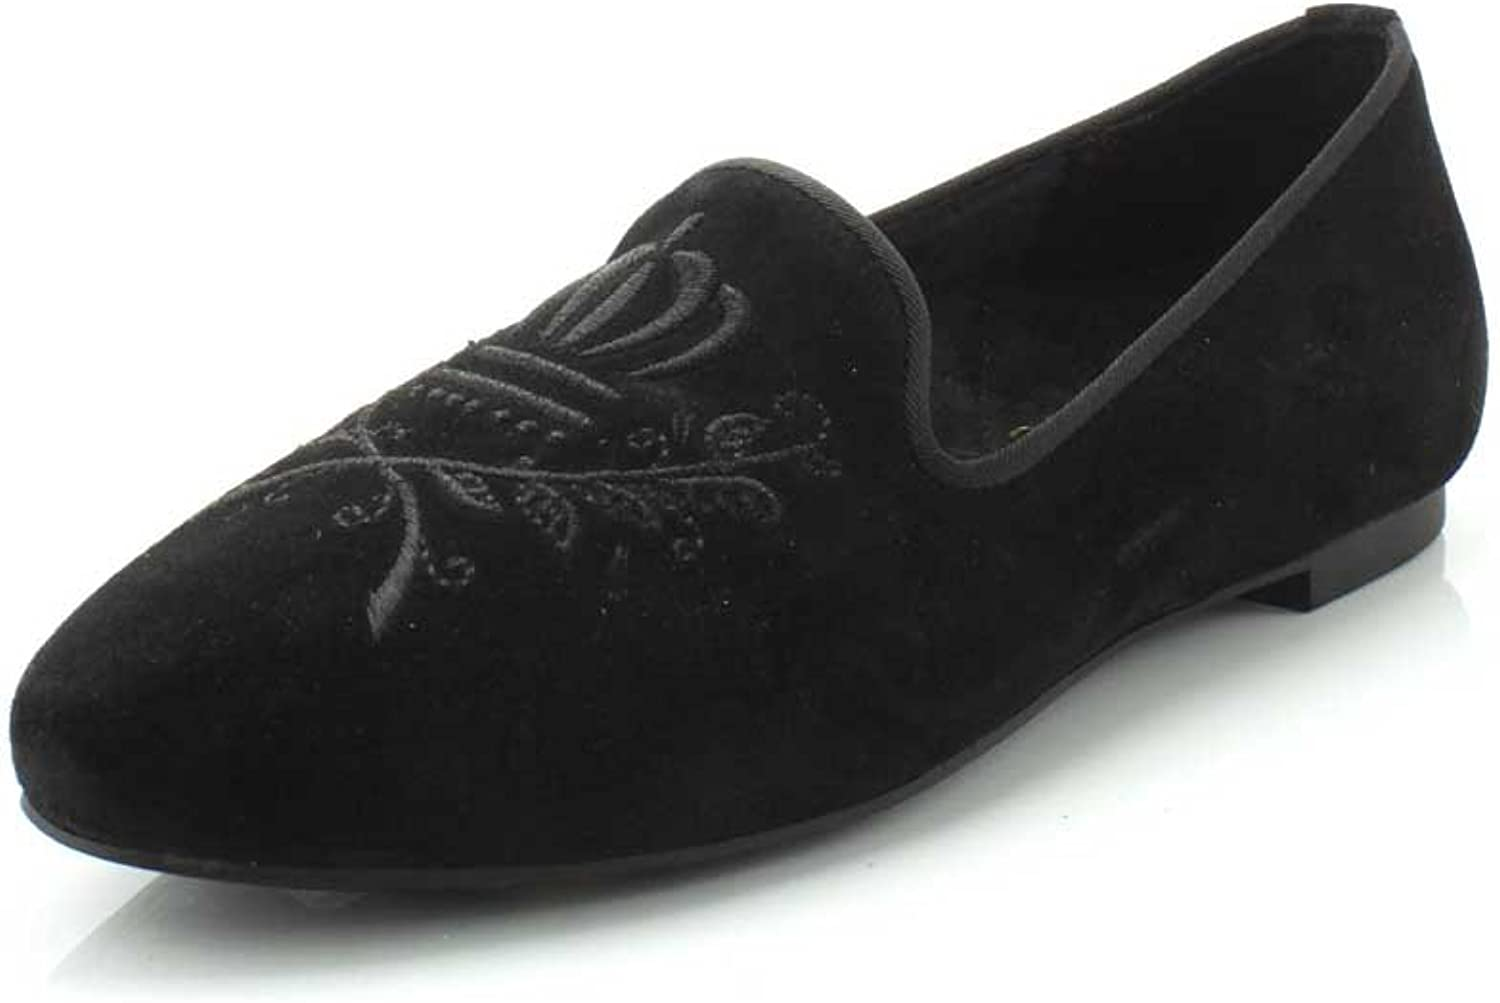 Vionic with Orthaheel Technology Women's Romi Black Black Suede